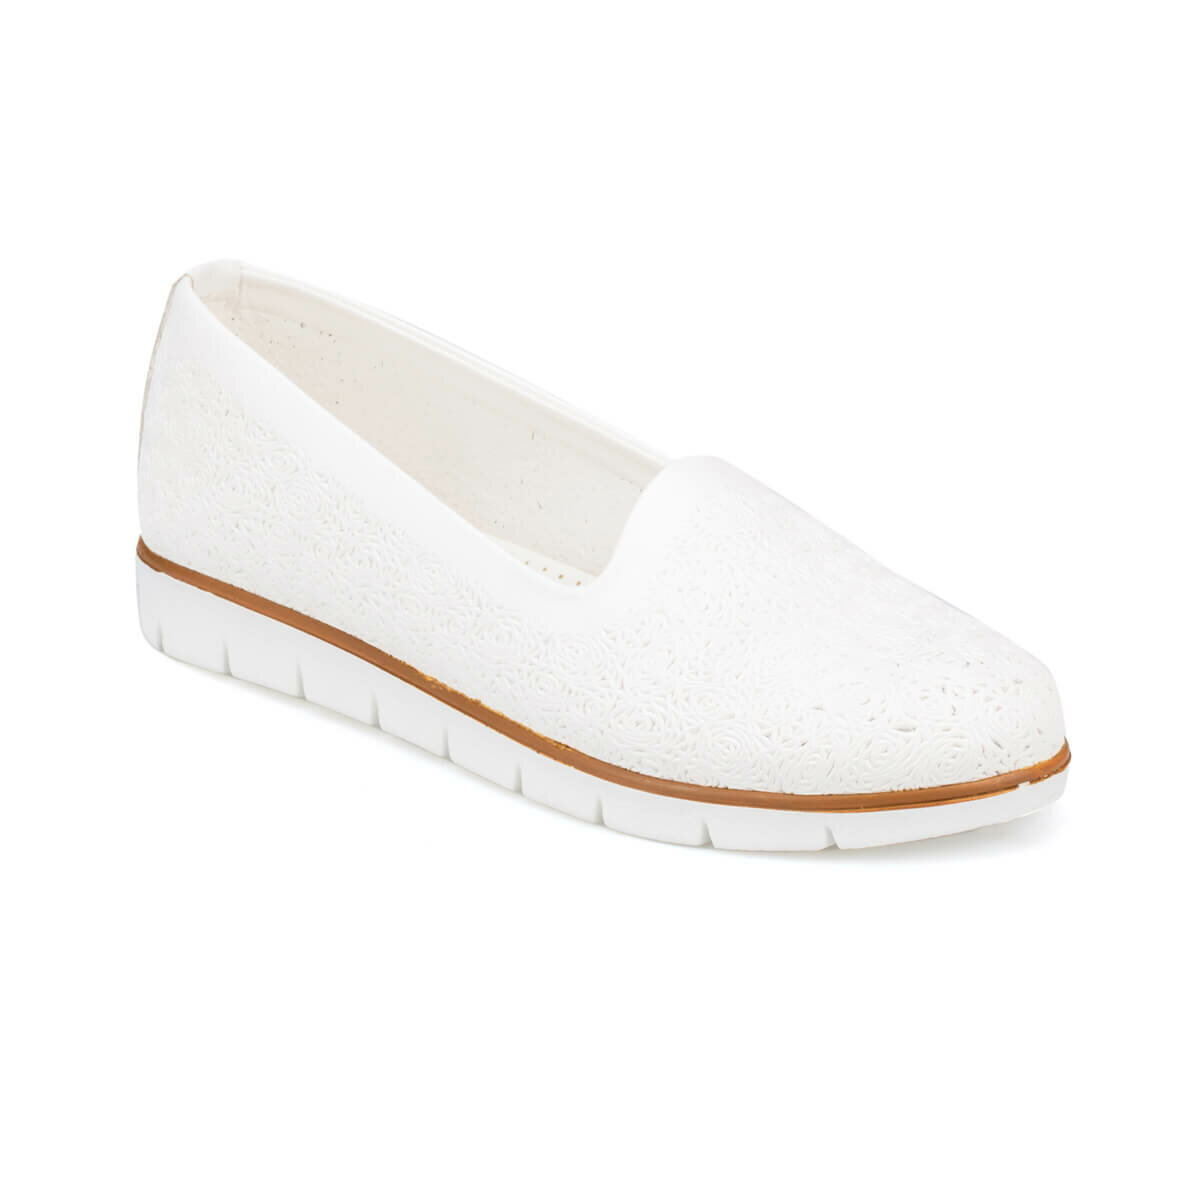 FLO 91. 150694.Z White Women 'S Shoes Polaris